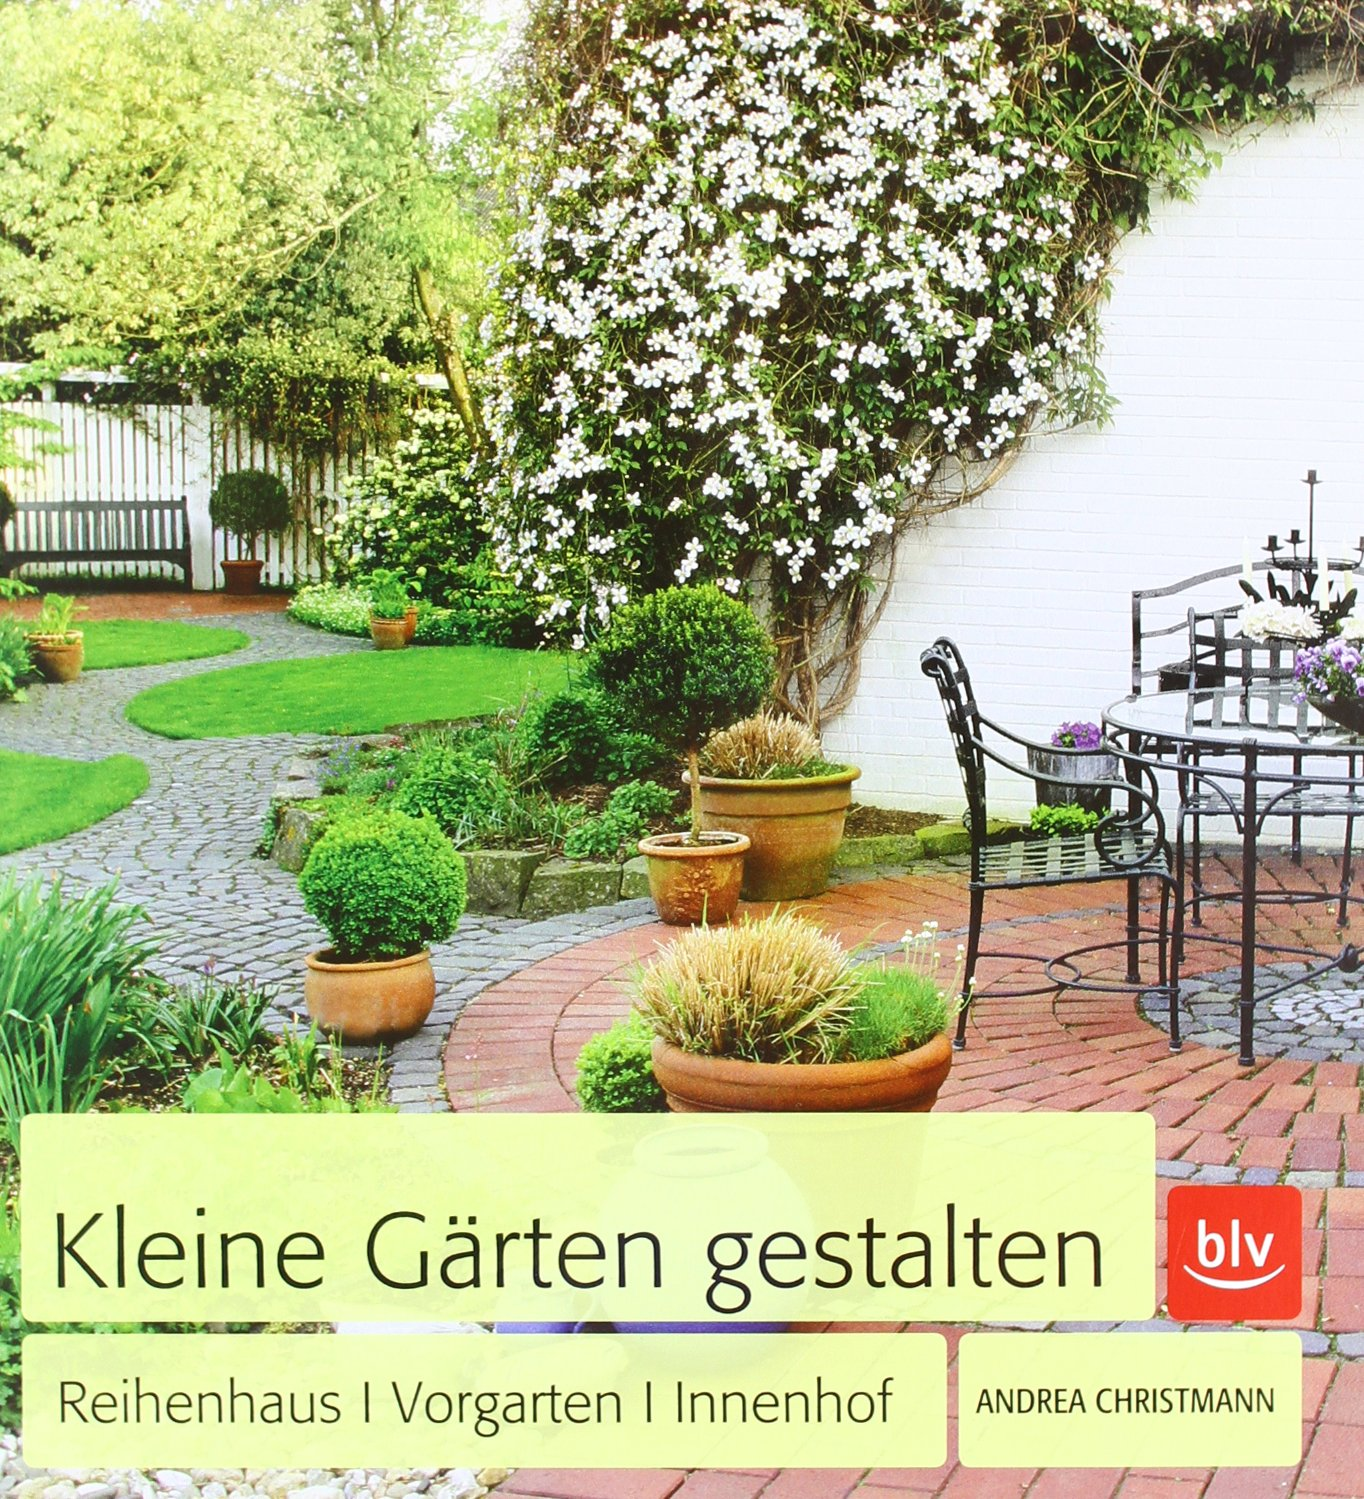 garten gestalten software gartenbeet gestalten wapdesire wapdesire terrasse gestalten software. Black Bedroom Furniture Sets. Home Design Ideas